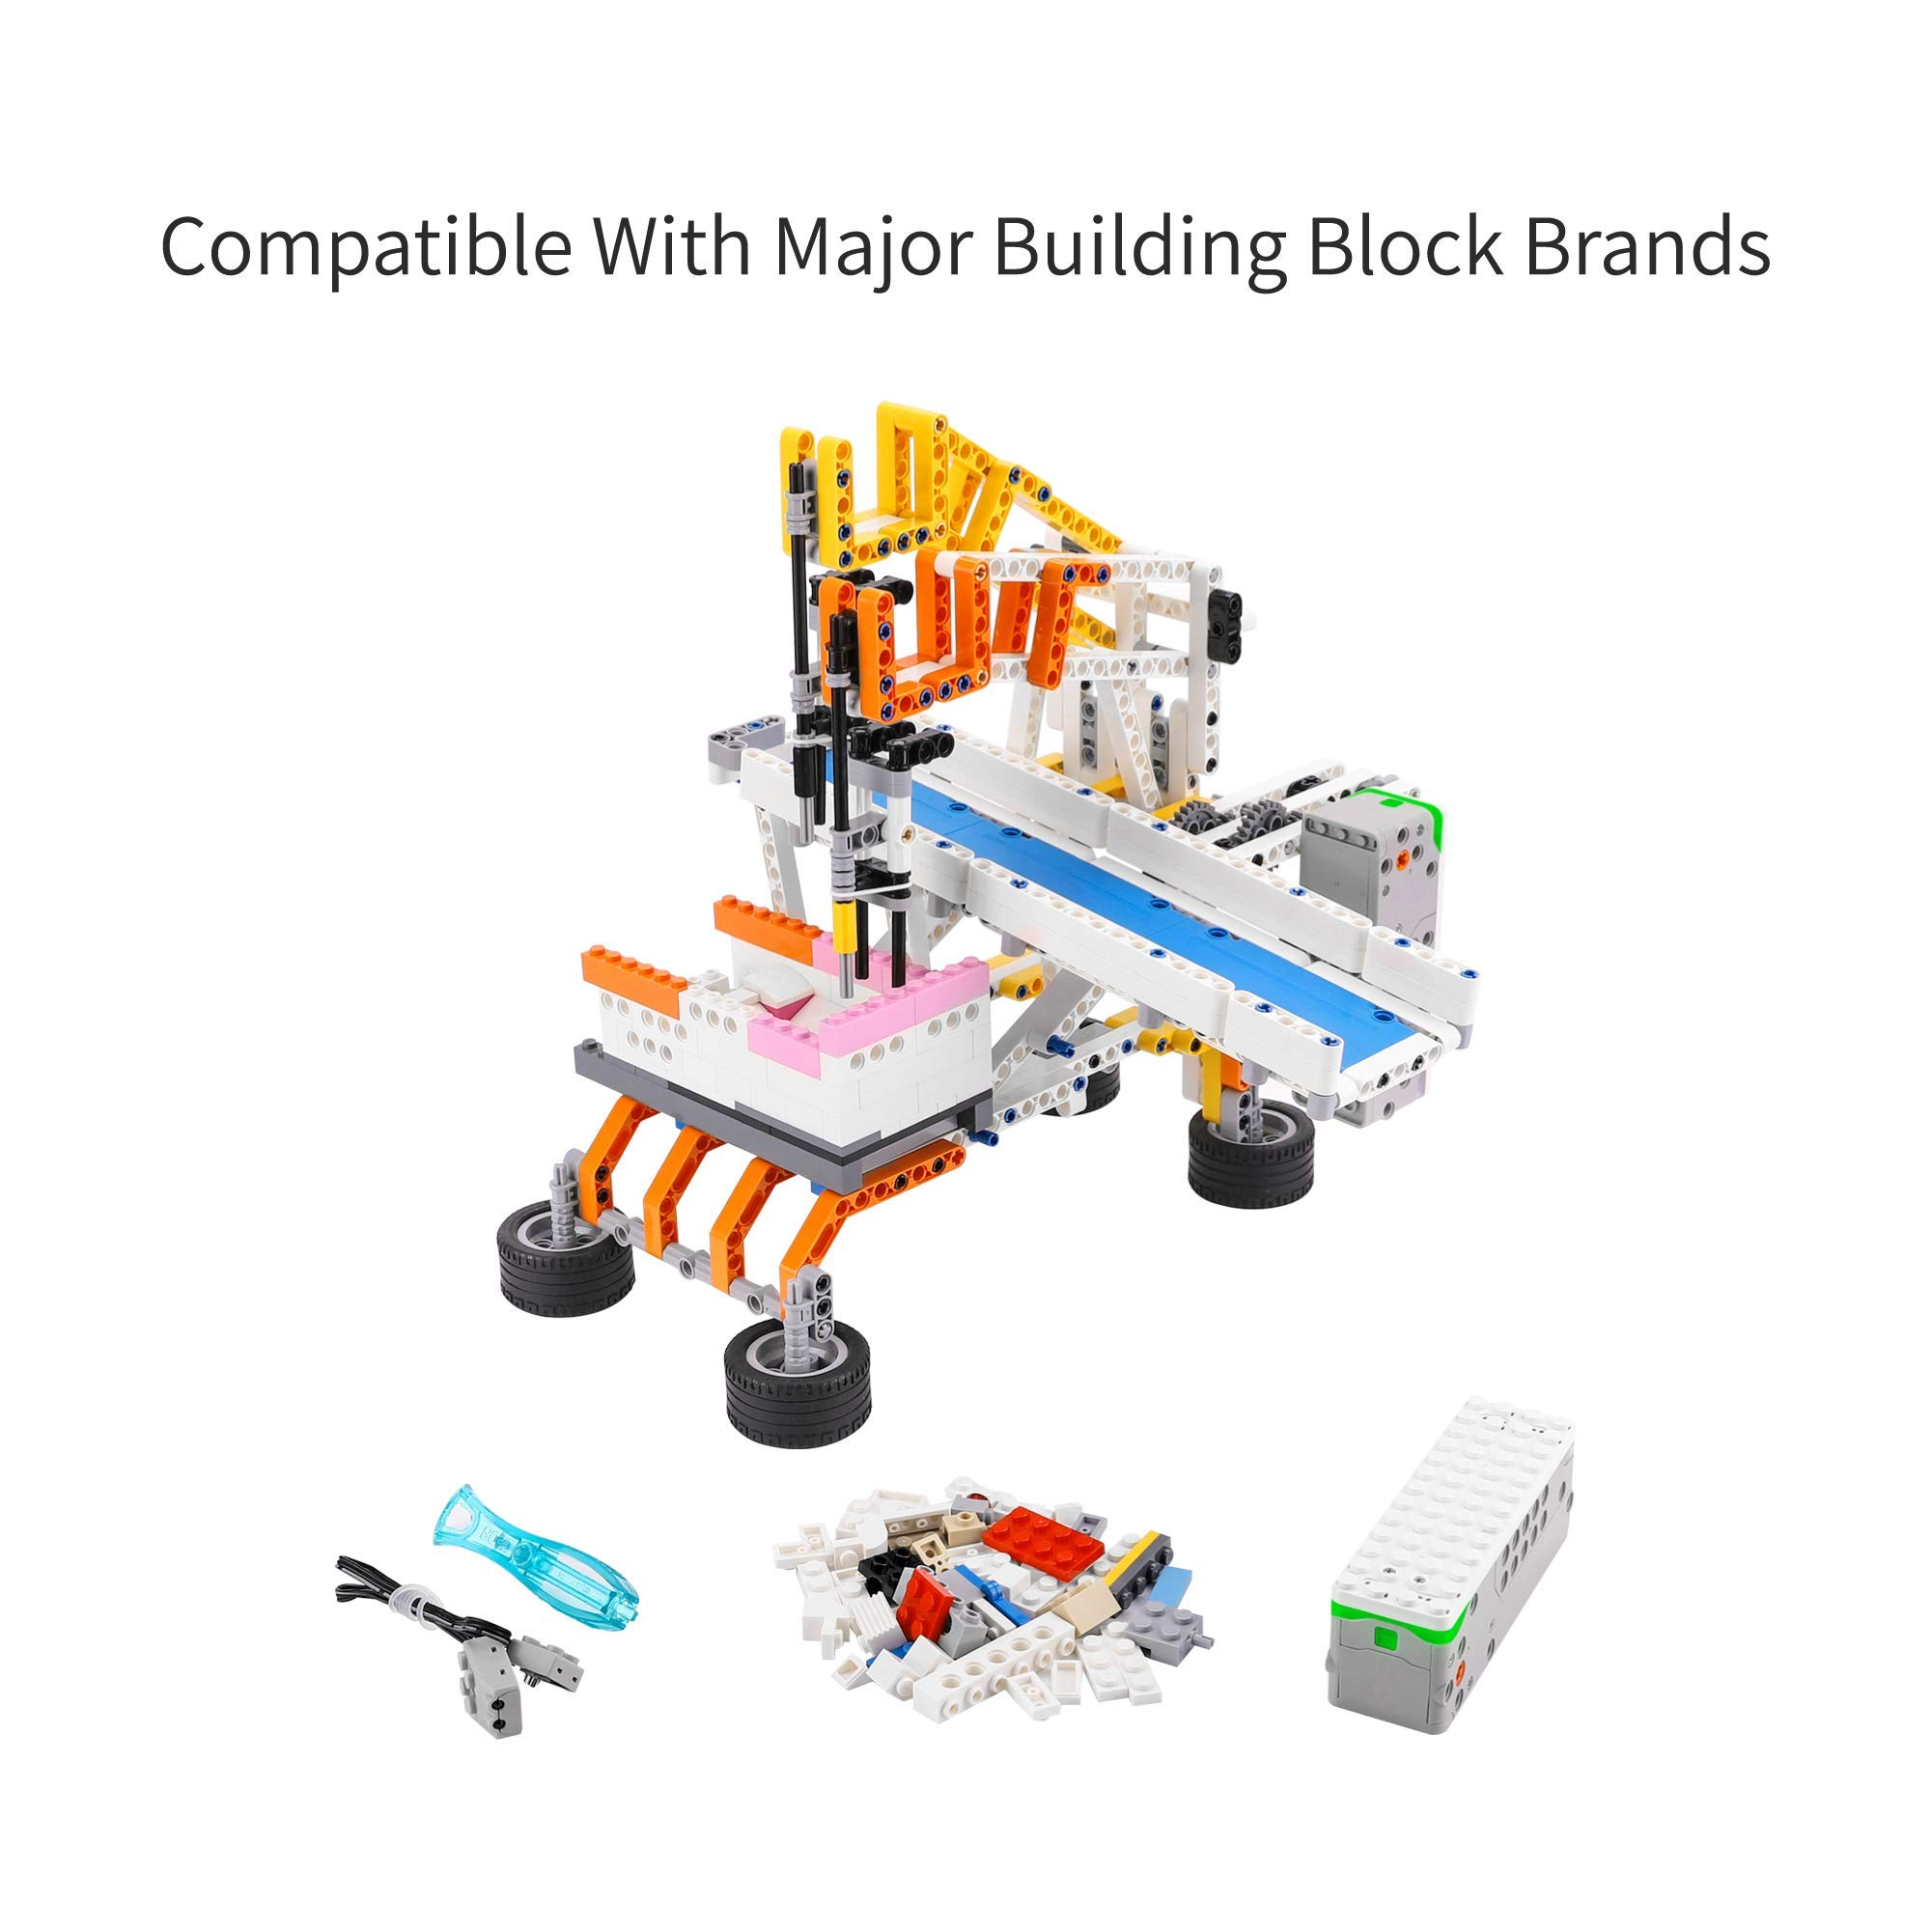 Apitor SuperBot, Educational Building Block 18 in 1 Robot Kit, APP Remote Control, STEM Coding Learning Toy, Ideal Gift for Kids 8+, Compatible with Major Building Block Toys (400+ Pieces) by Apitor Technology Co., Ltd. (Image #4)